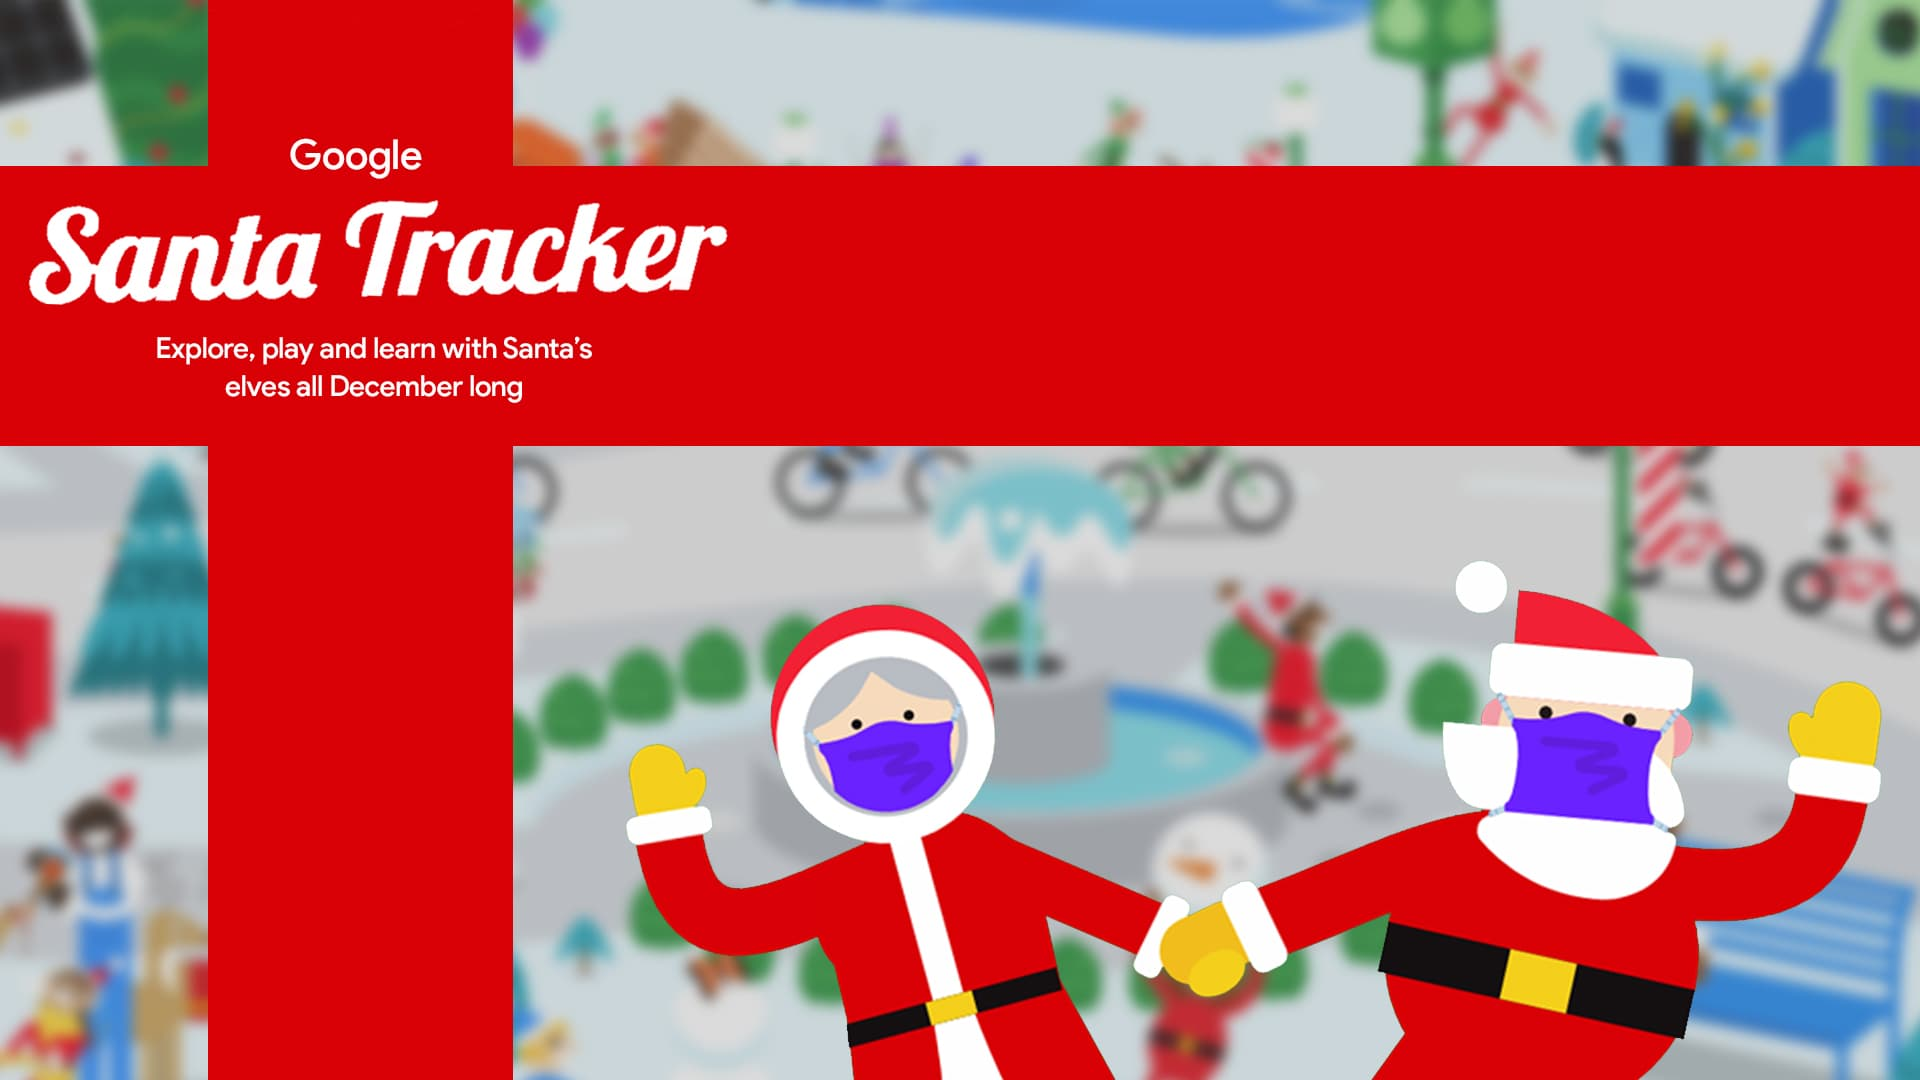 Google's Santa Tracker updated to feature a Mr. and Mrs. Claus practicing COVID safety